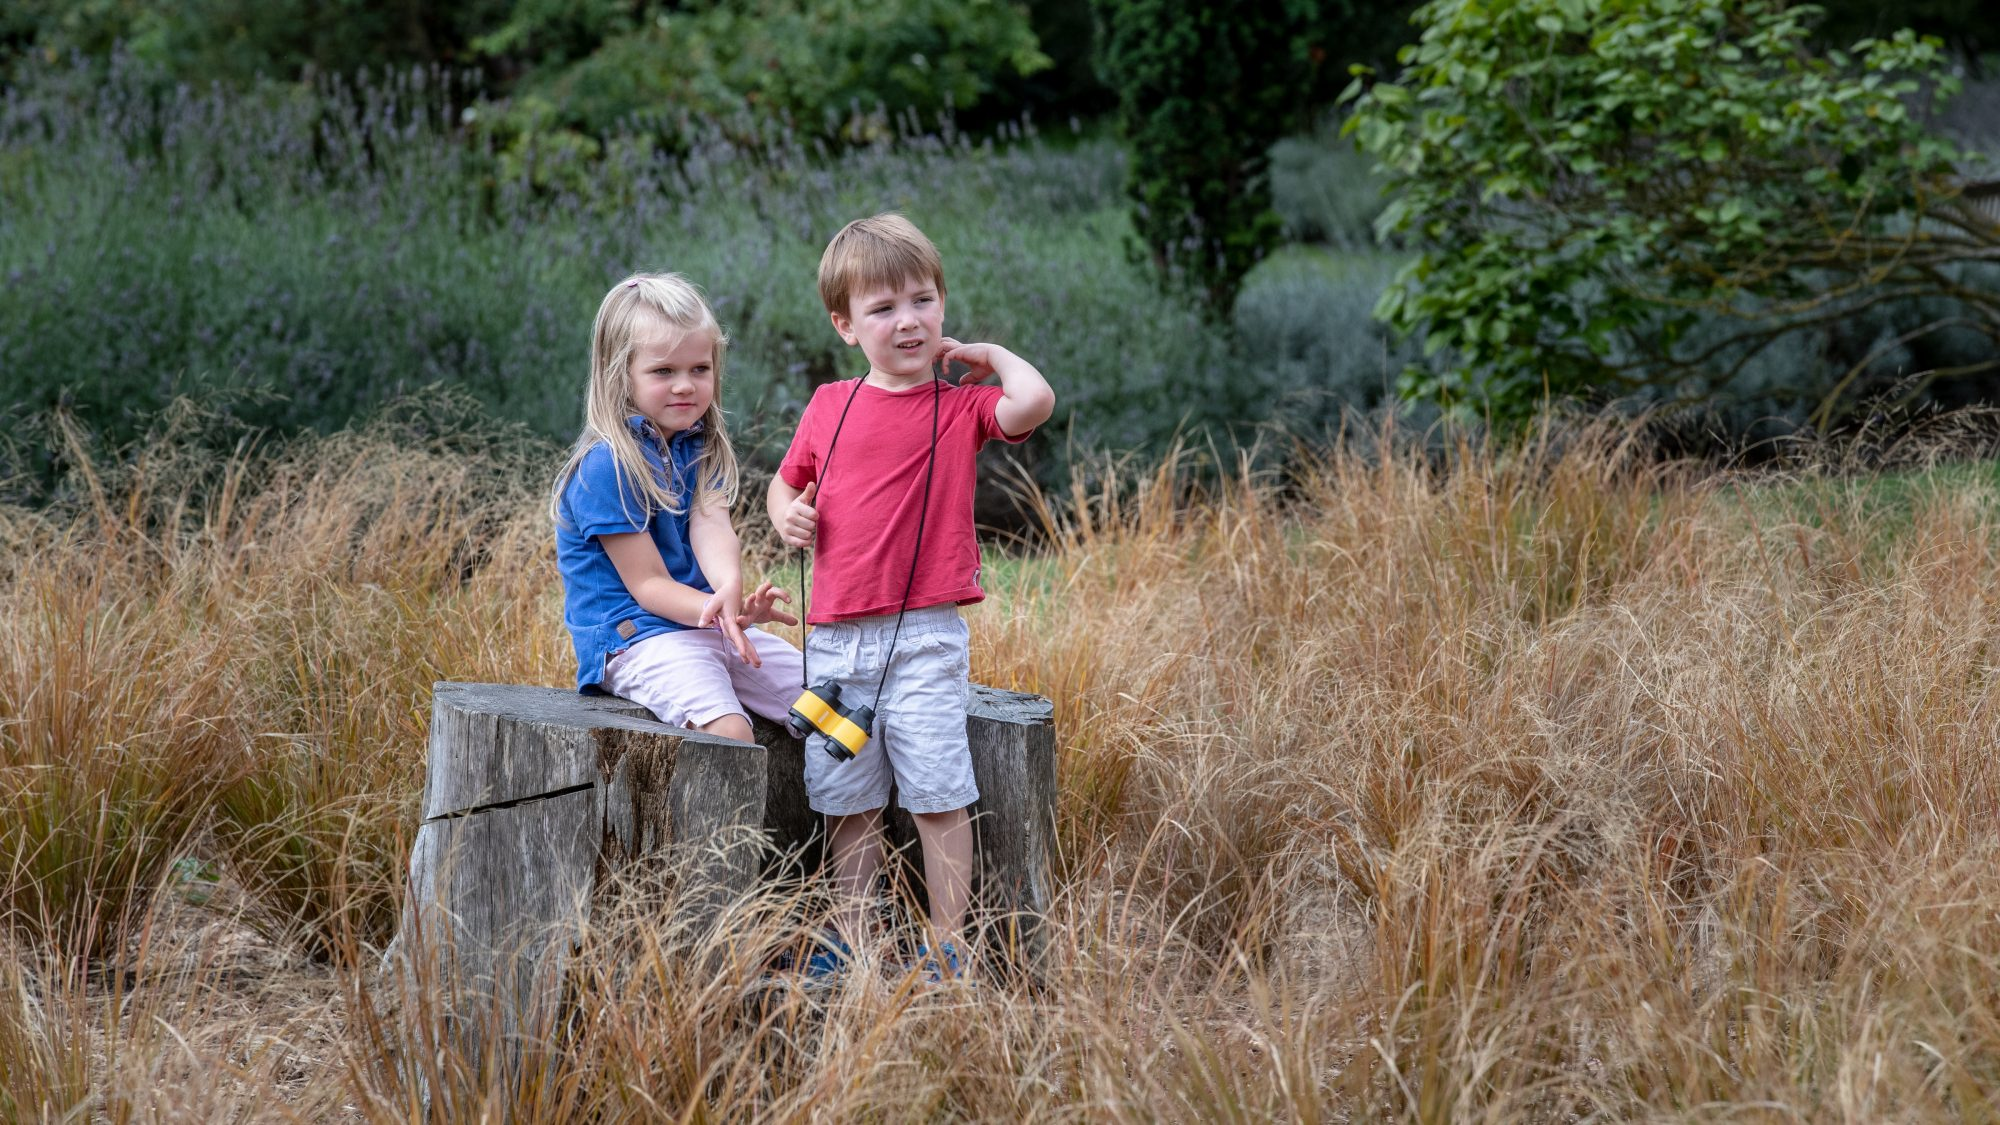 Children playing in the Anemanthele lessoniana, Grass Maze.